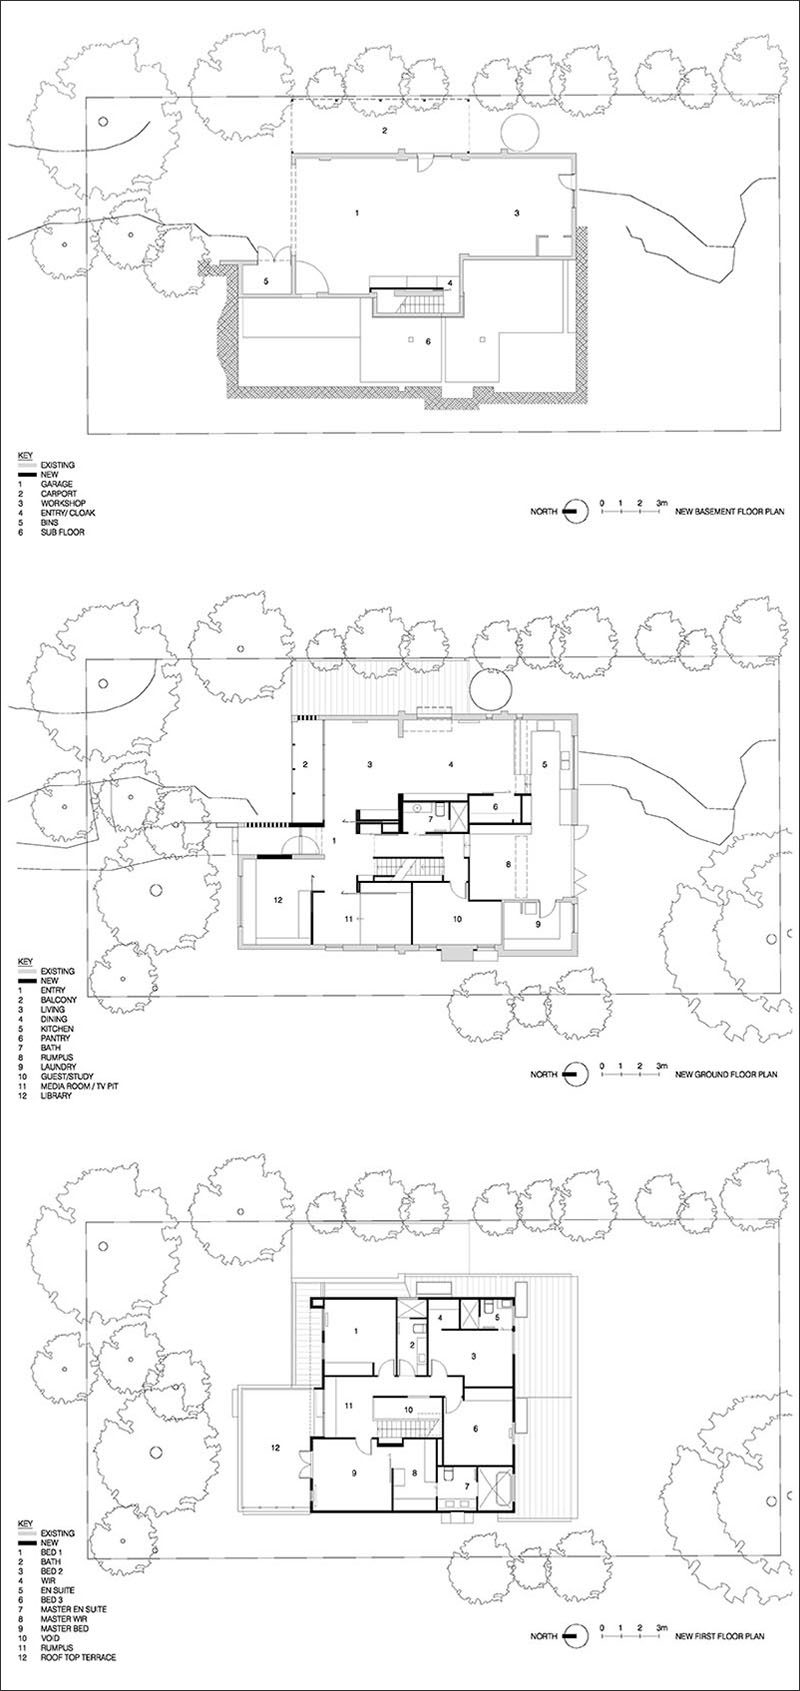 This is the floor plan of a modern renovation of a 1970's double storey brown brick house in Australia that's home to a family of 5 that have outgrown the original home.